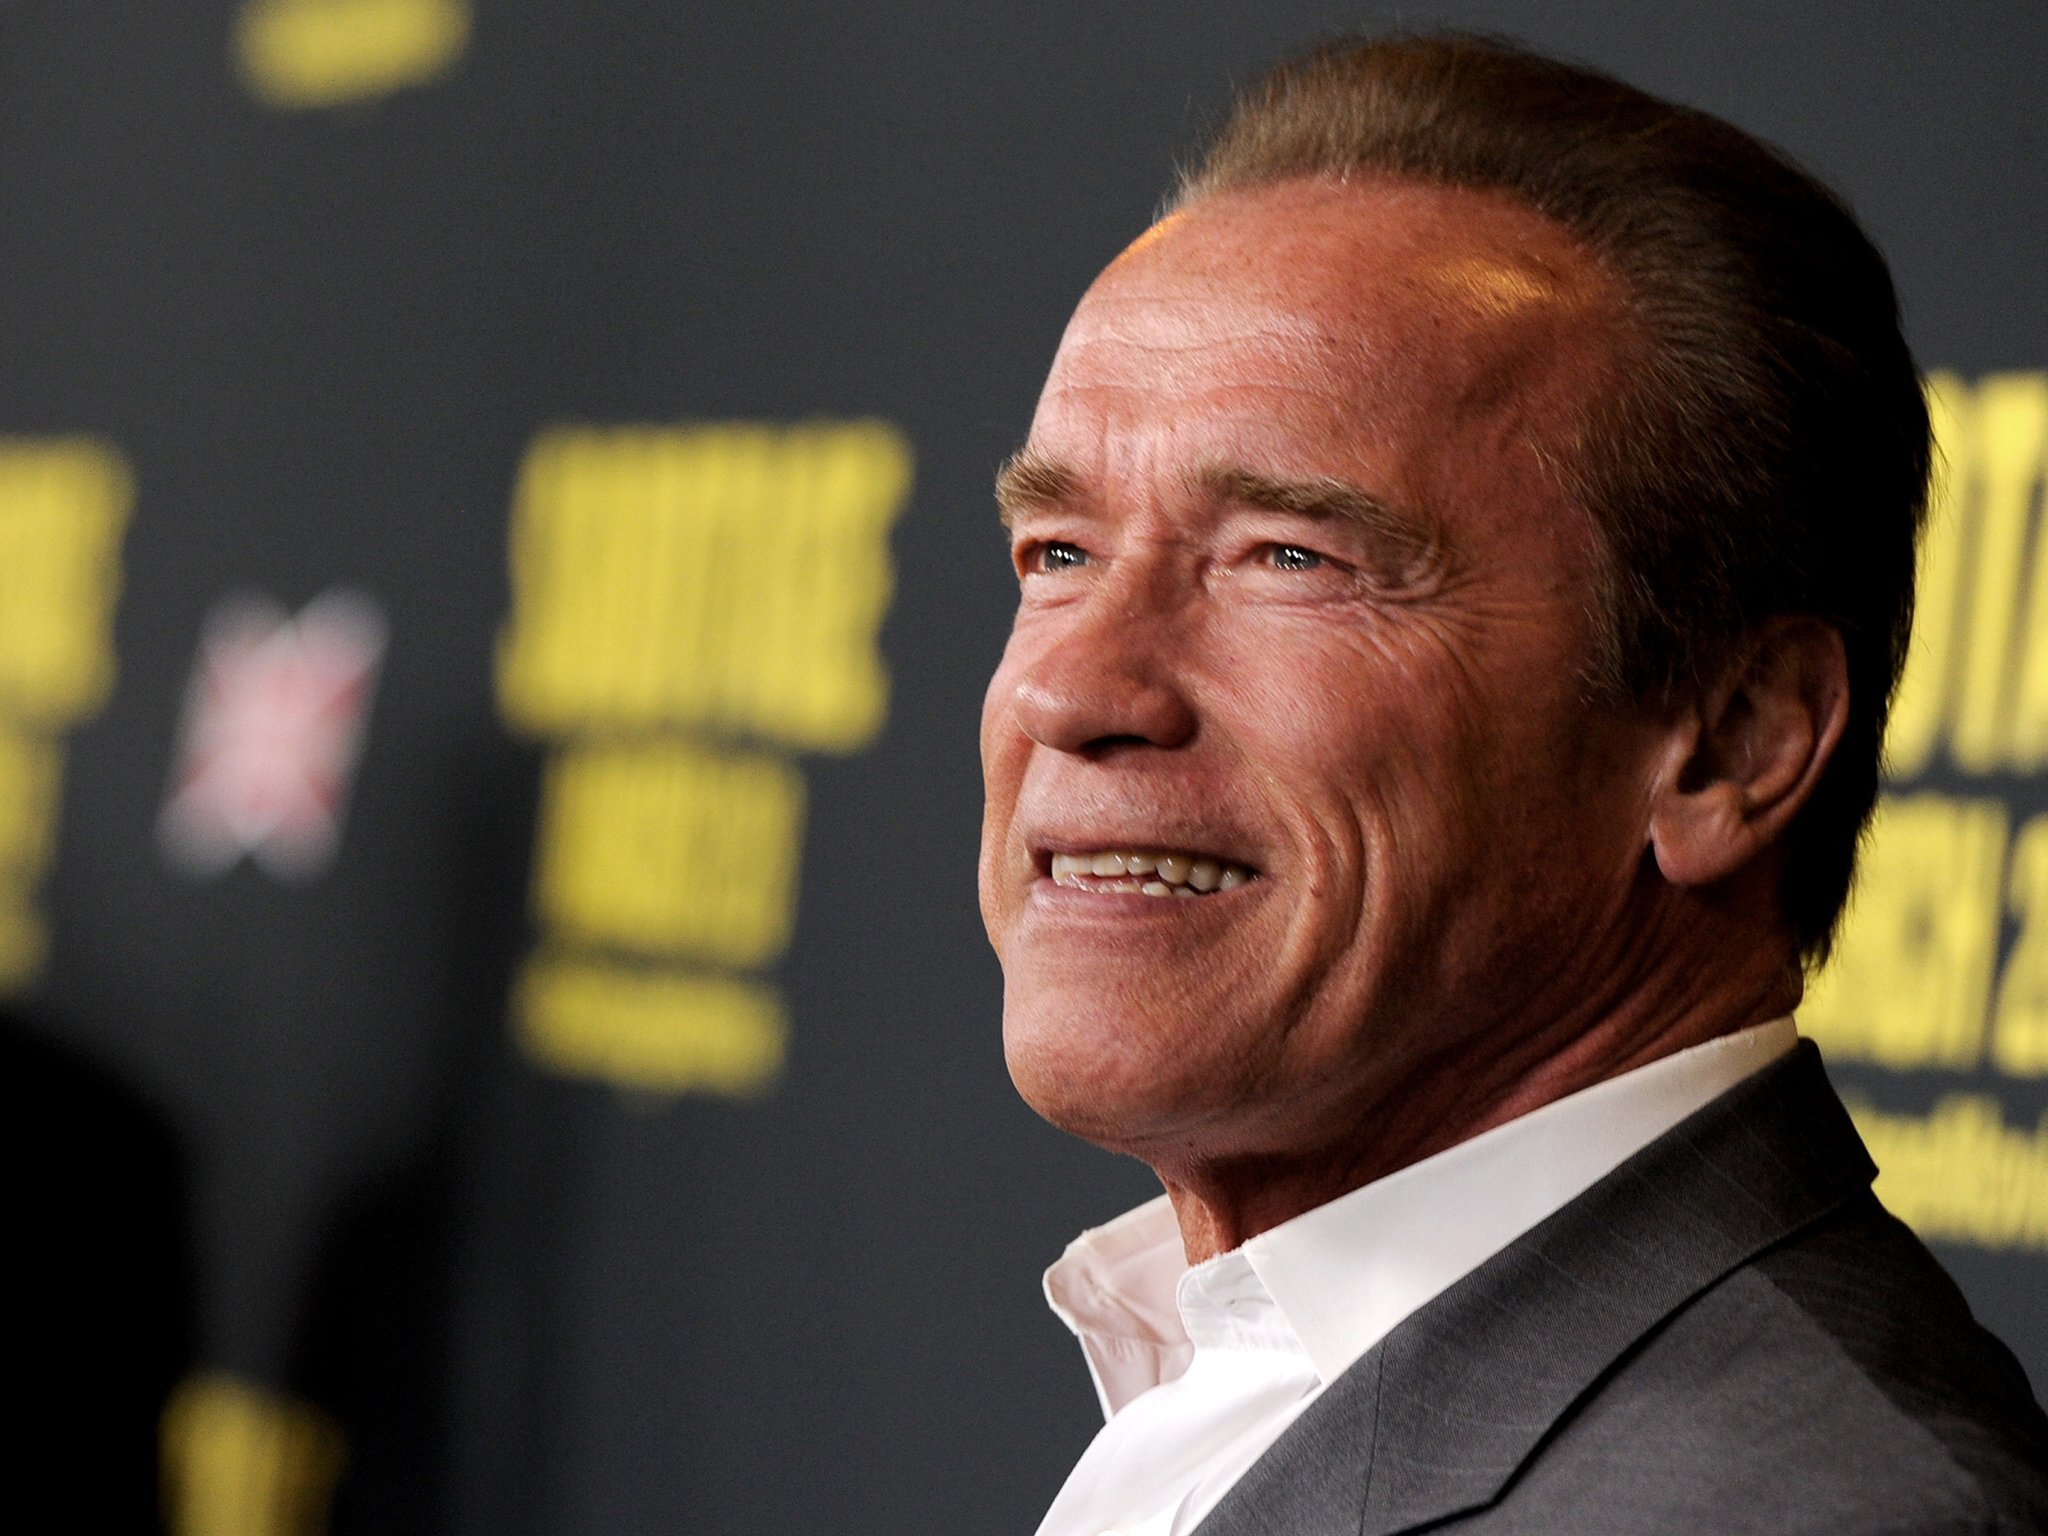 Conservative Street Artist Takes Aim At Arnold Schwarzenegger With MeToo Posters